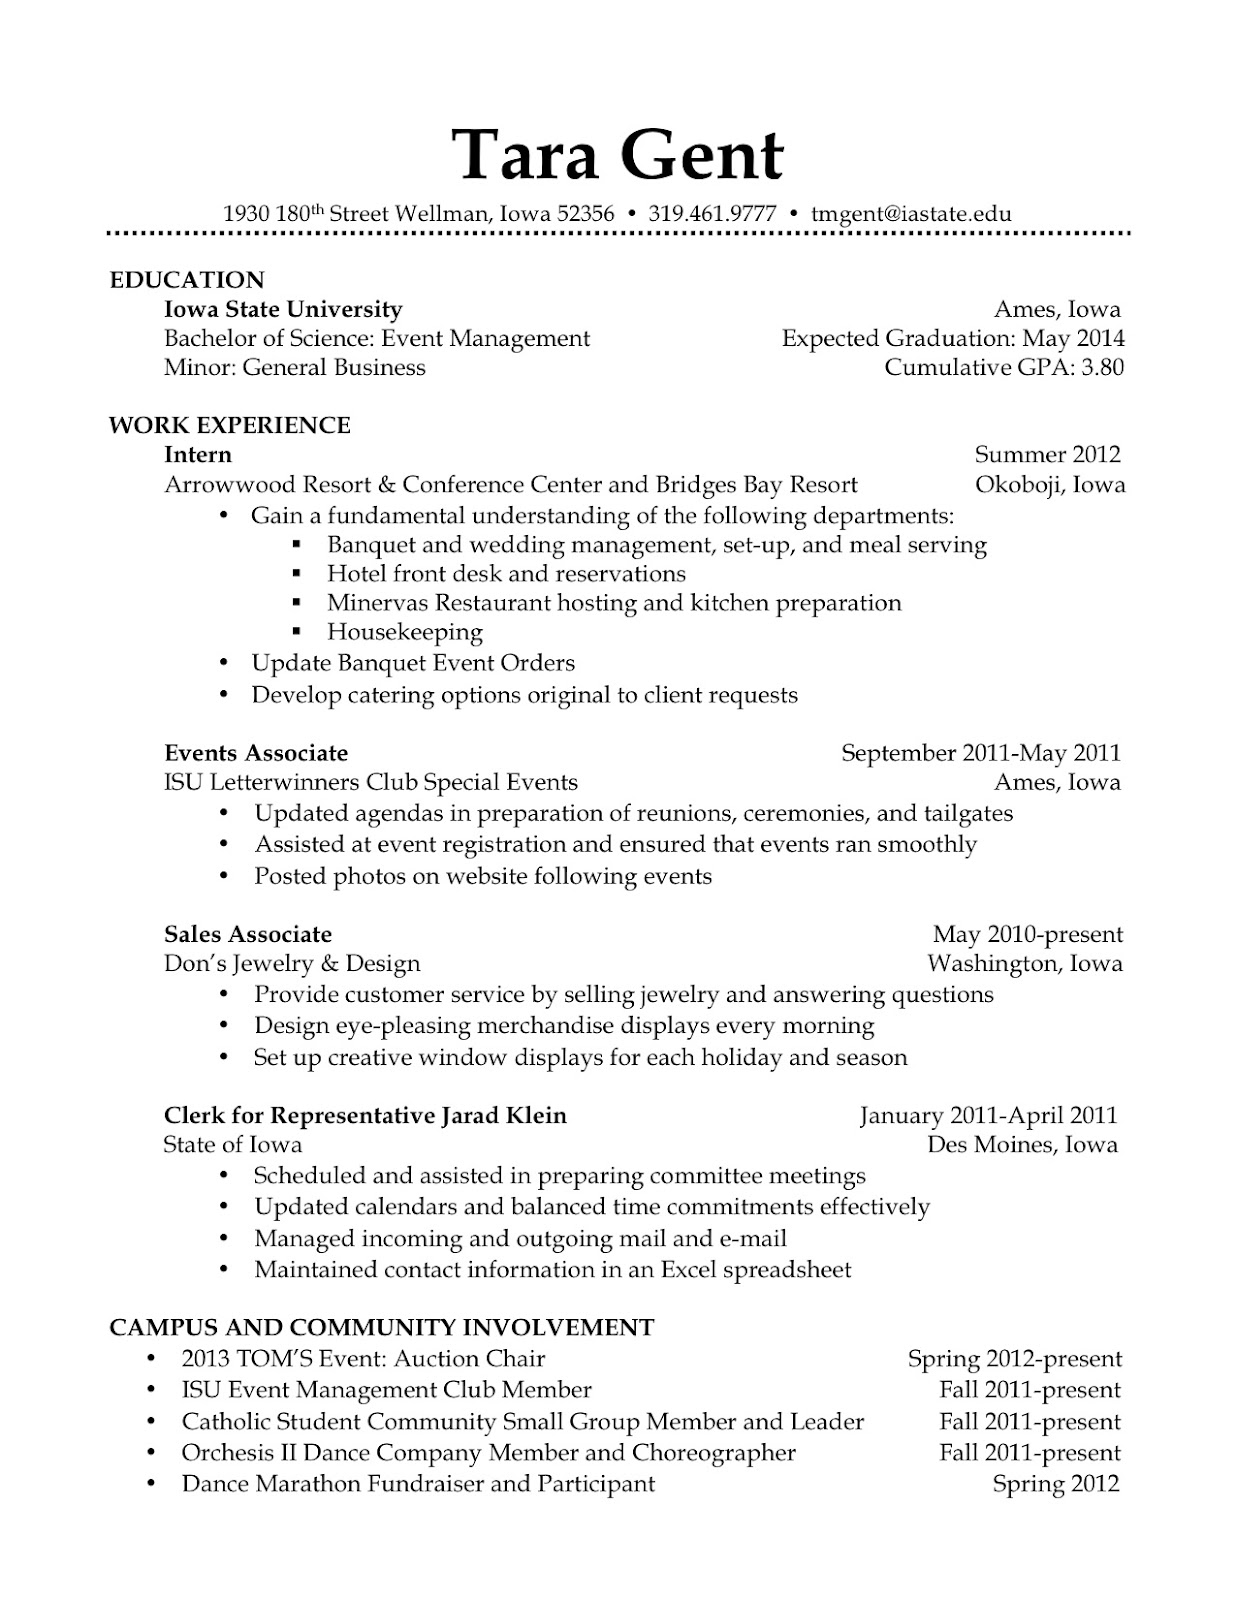 Jobstreet Resume Format Sample Resume Jobstreet Singapore Resume